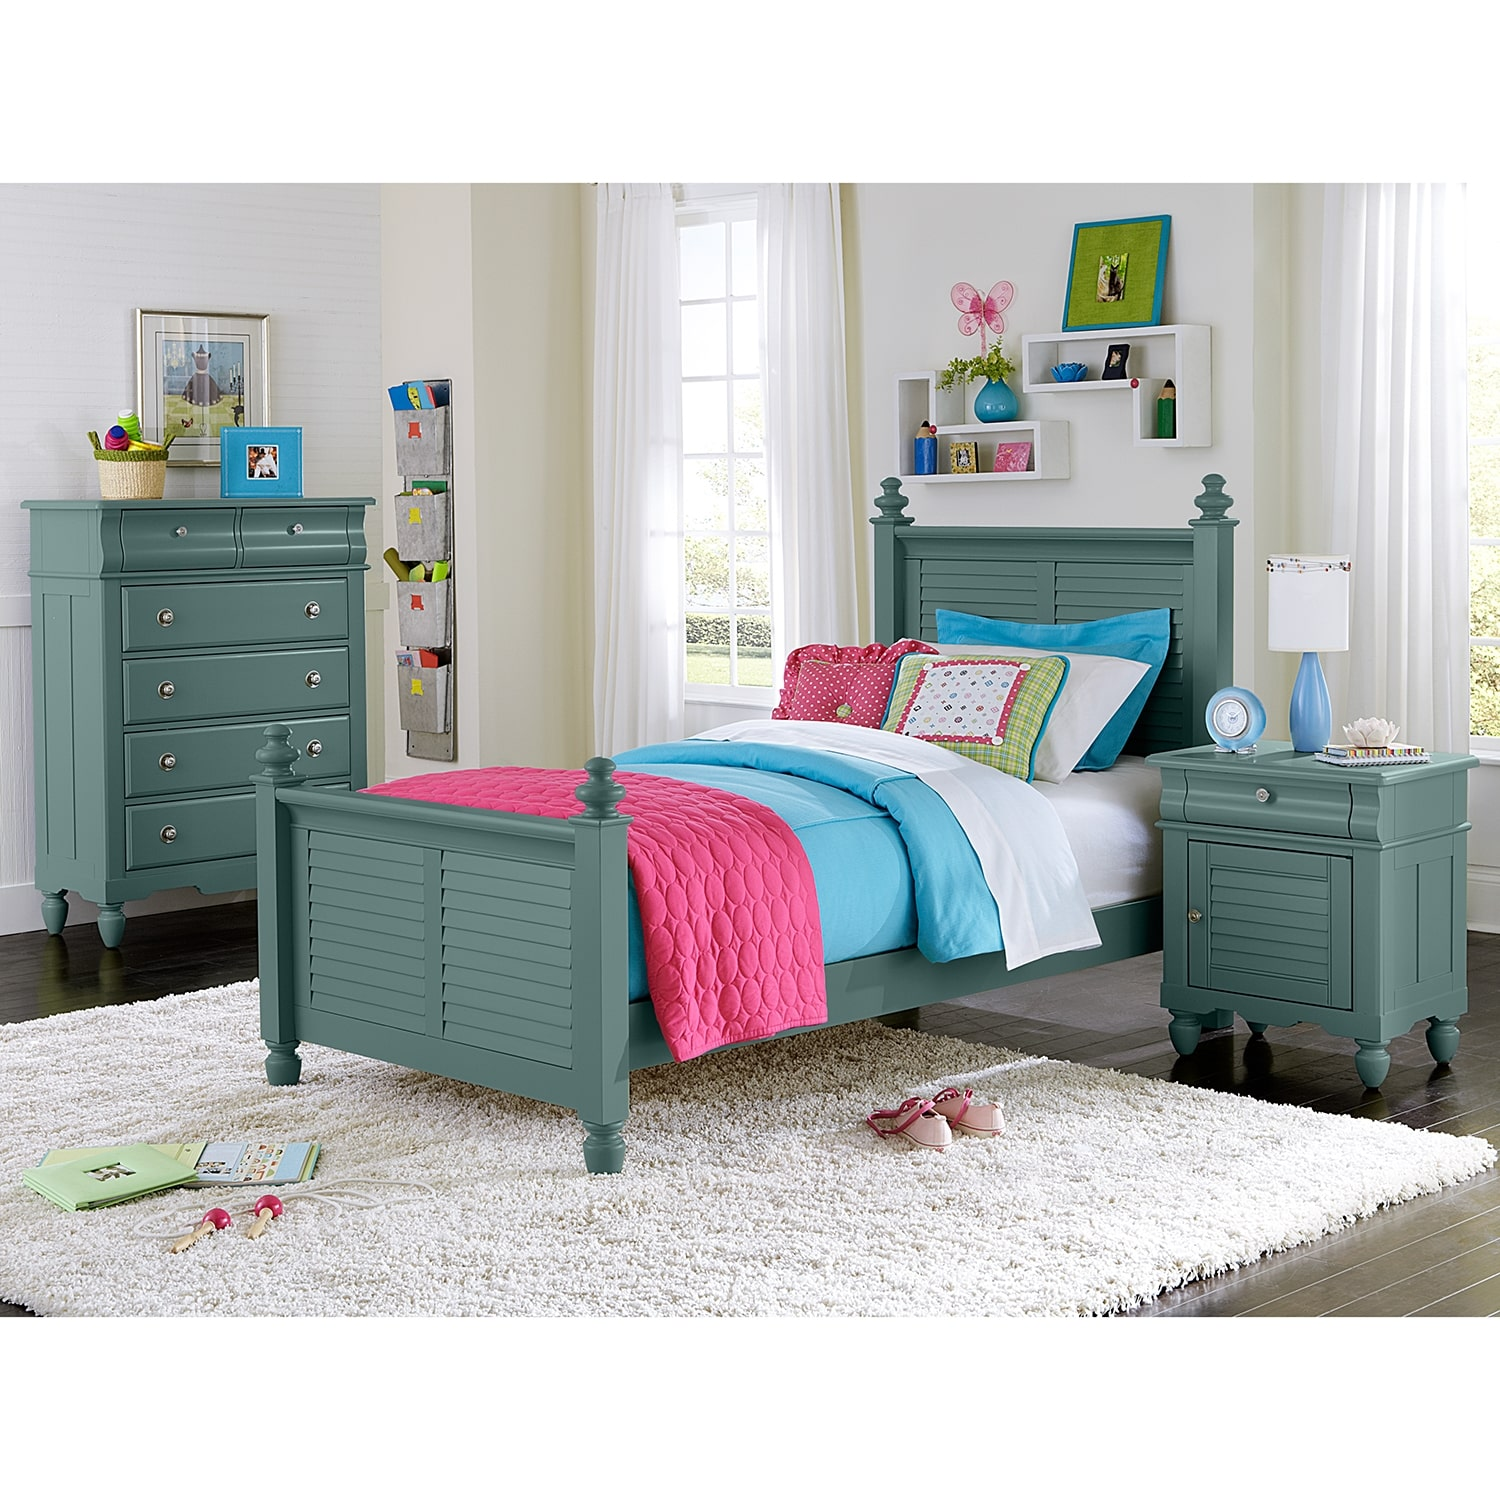 Seaside Bedroom Accessories Seaside Twin Bed Blue Value City Furniture